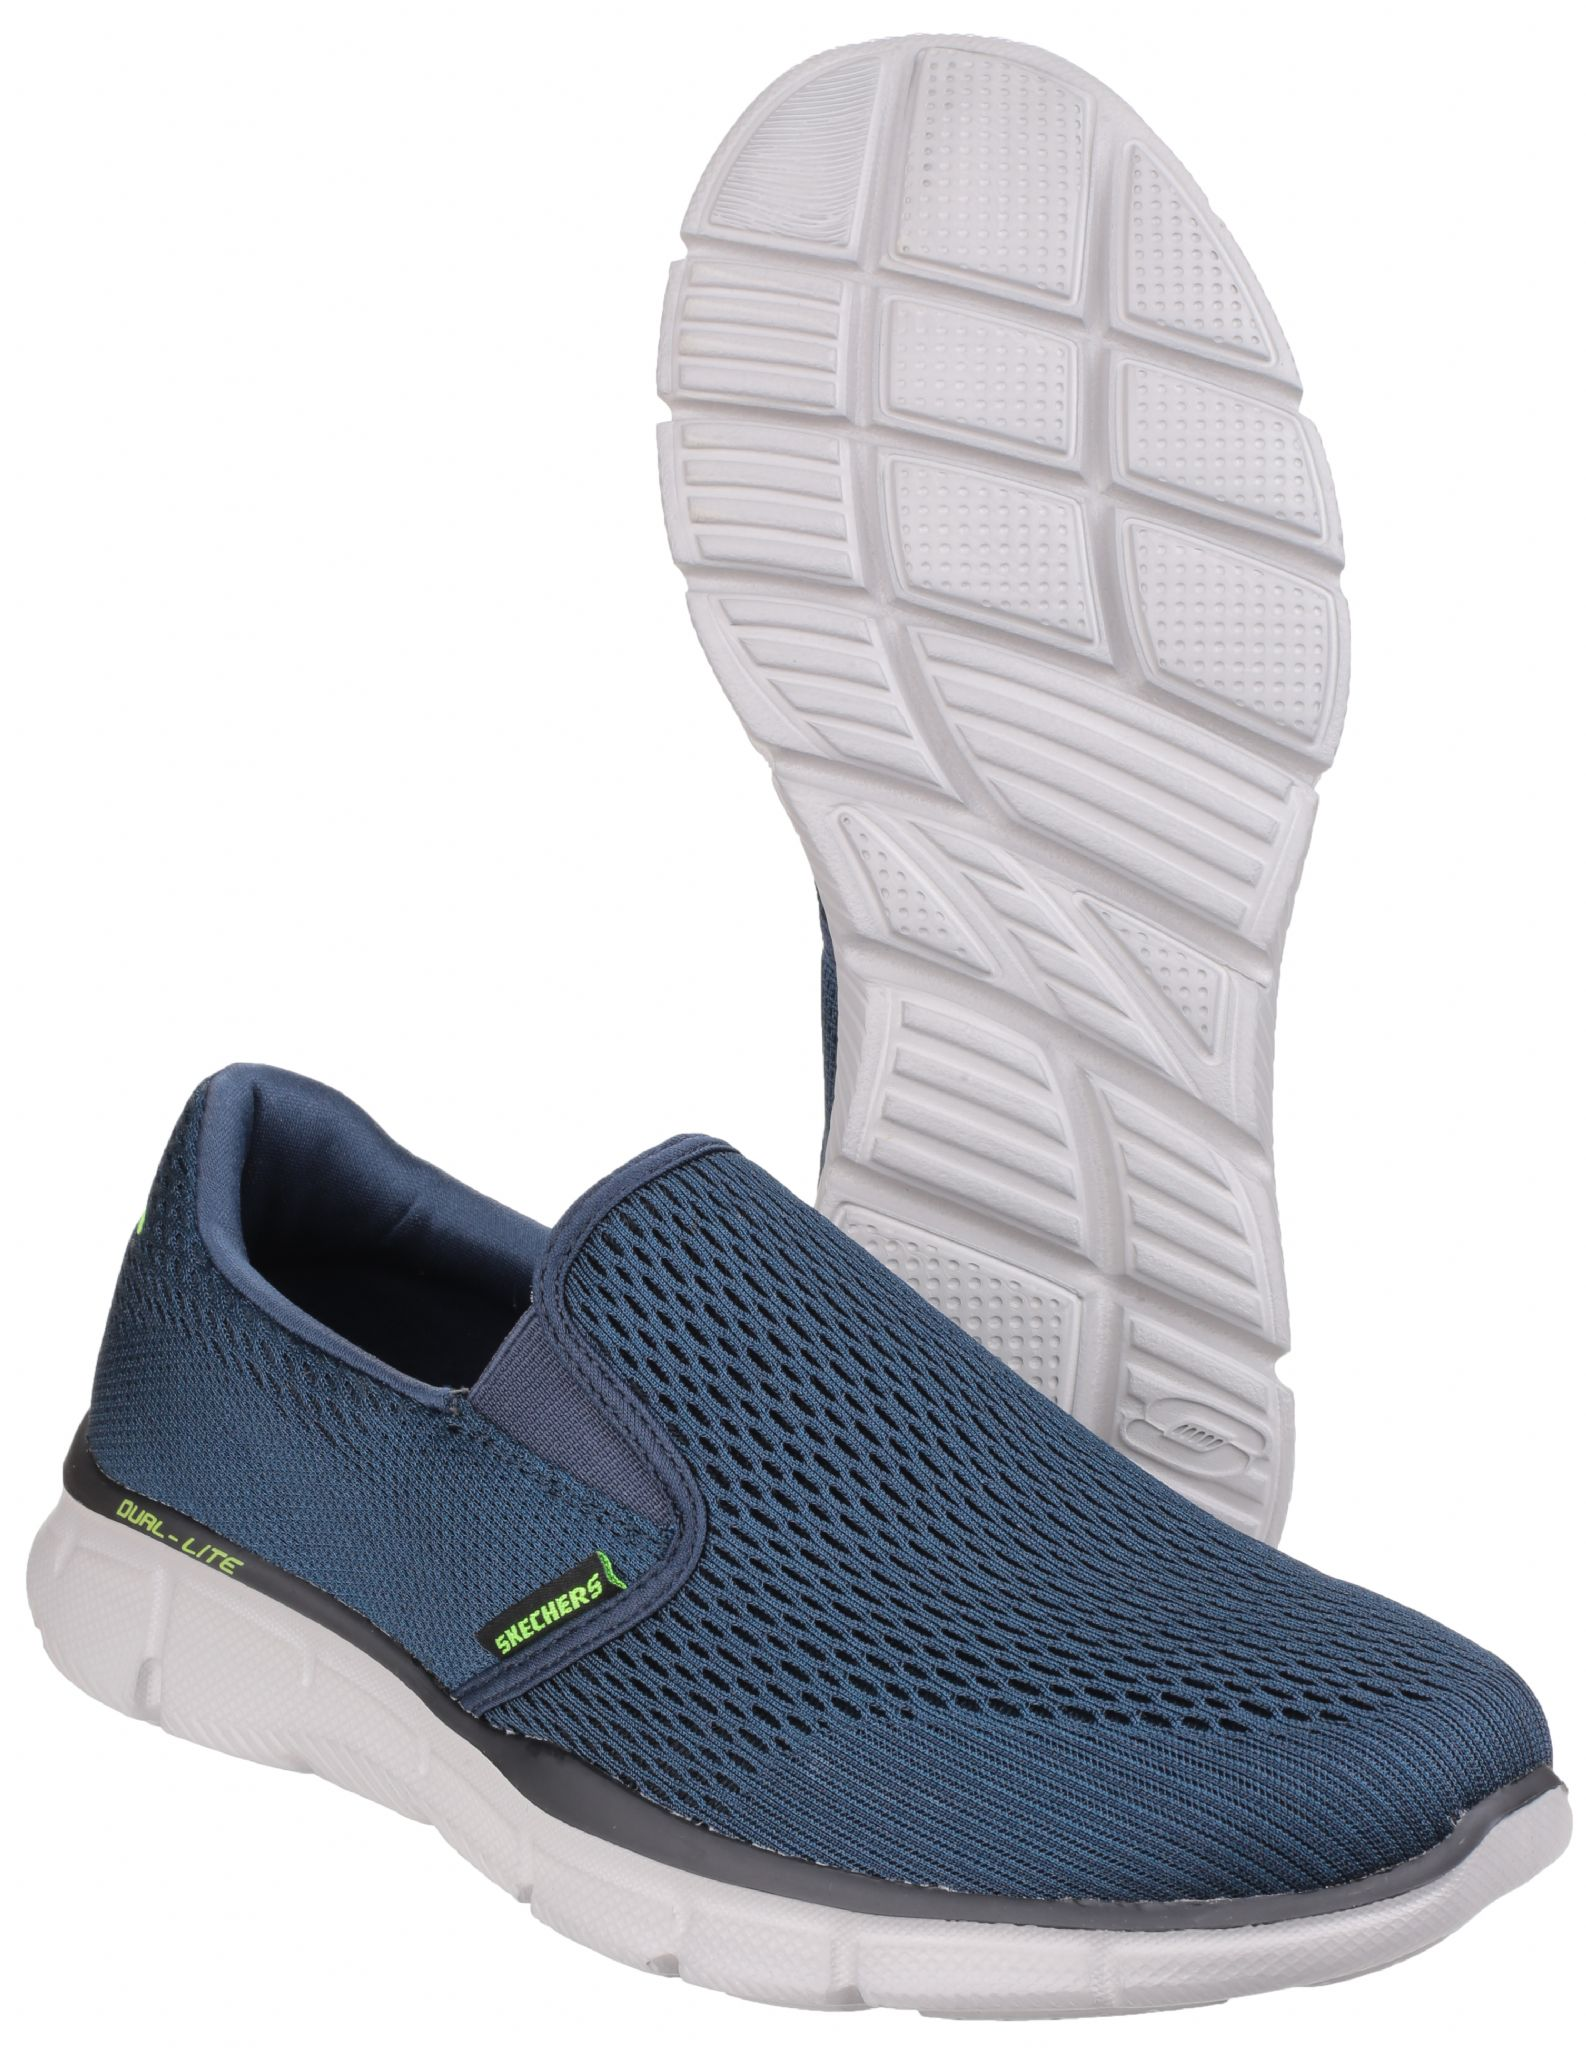 Mens Skechers 51509 NVY Navy Equalizer Slip On Trainers